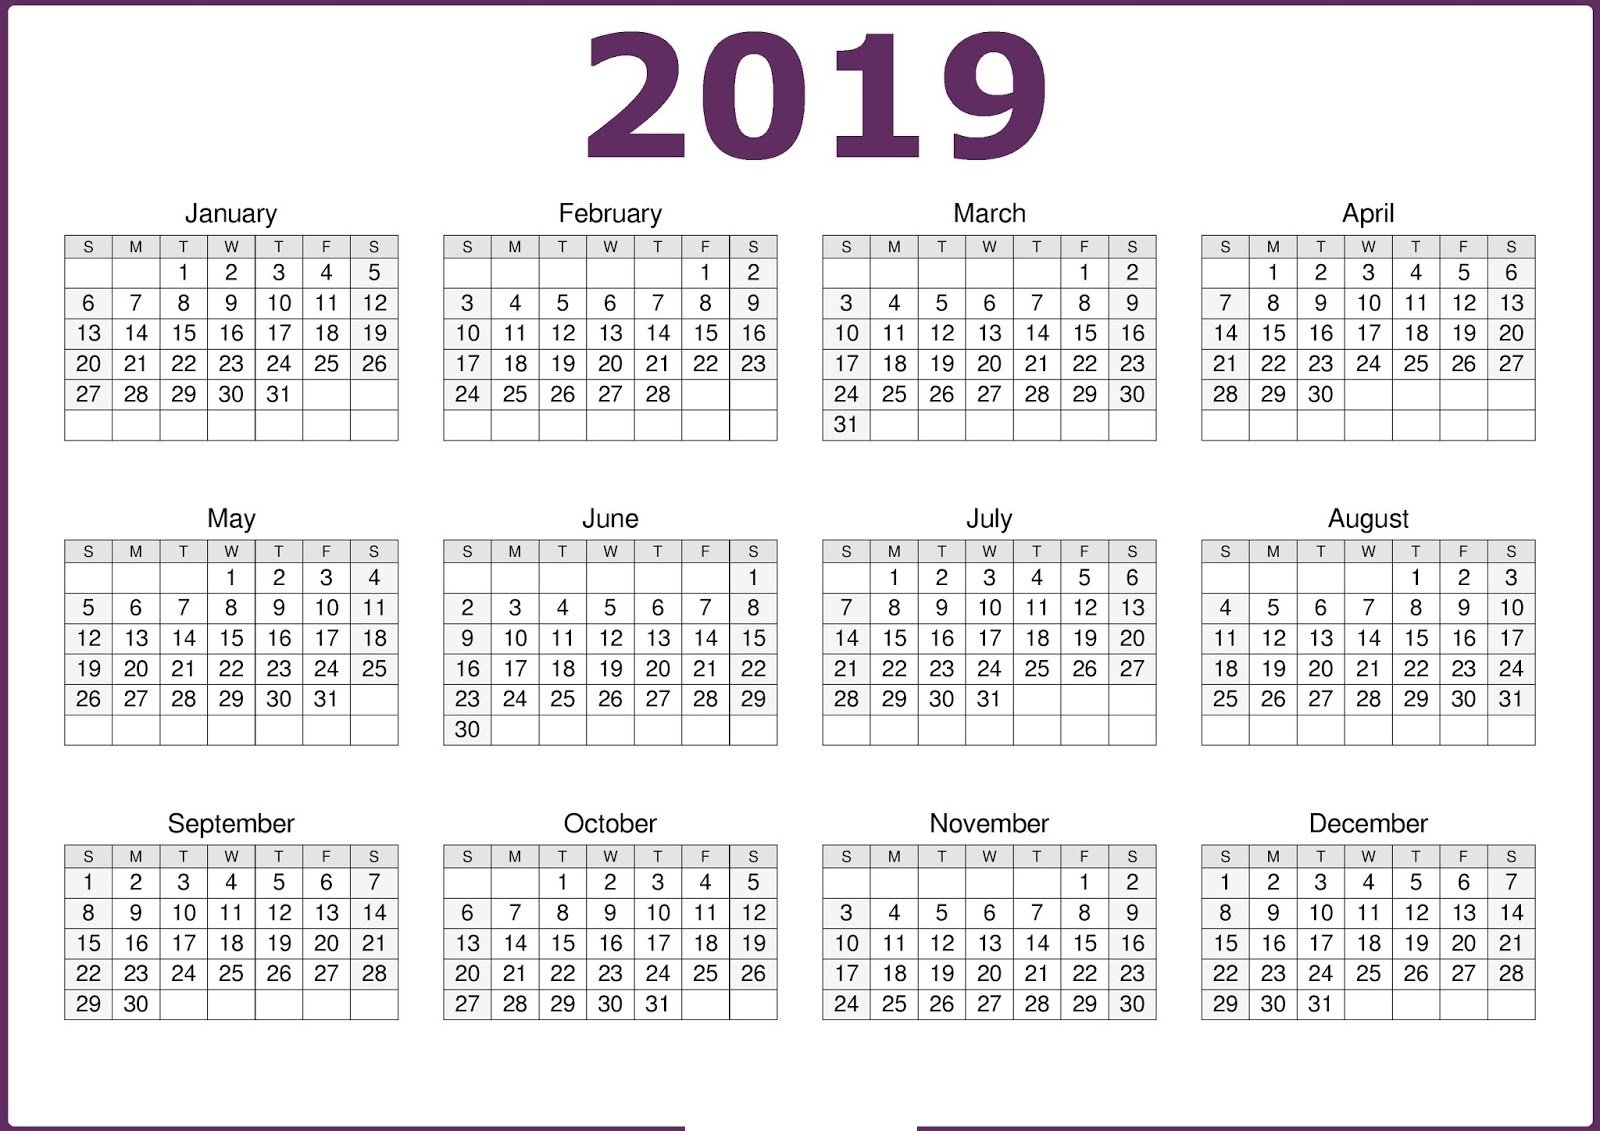 Get Free Blank Calendar Pages 2019 Templates | August 2018 Calendar 2019 Calendar Queensland Printable